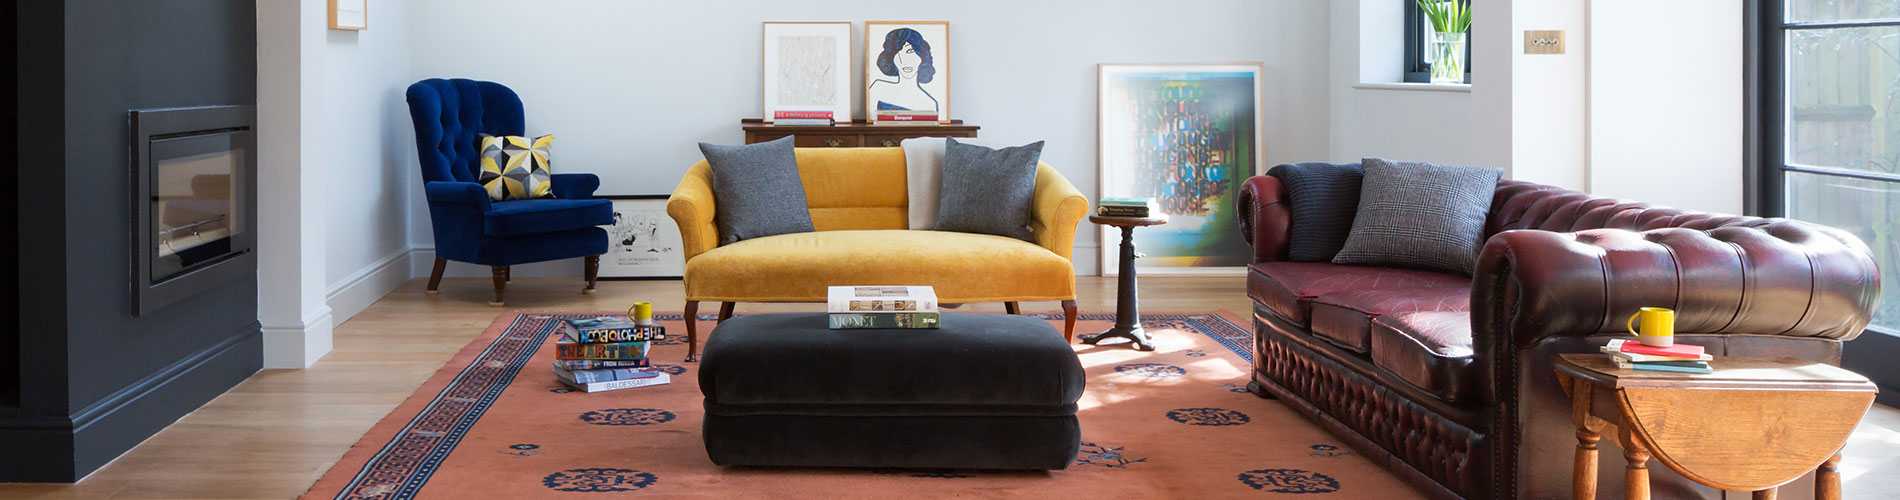 open plan living room library with dividing fireplace and oak floor vintage Chesterfield and coloured velvet seating